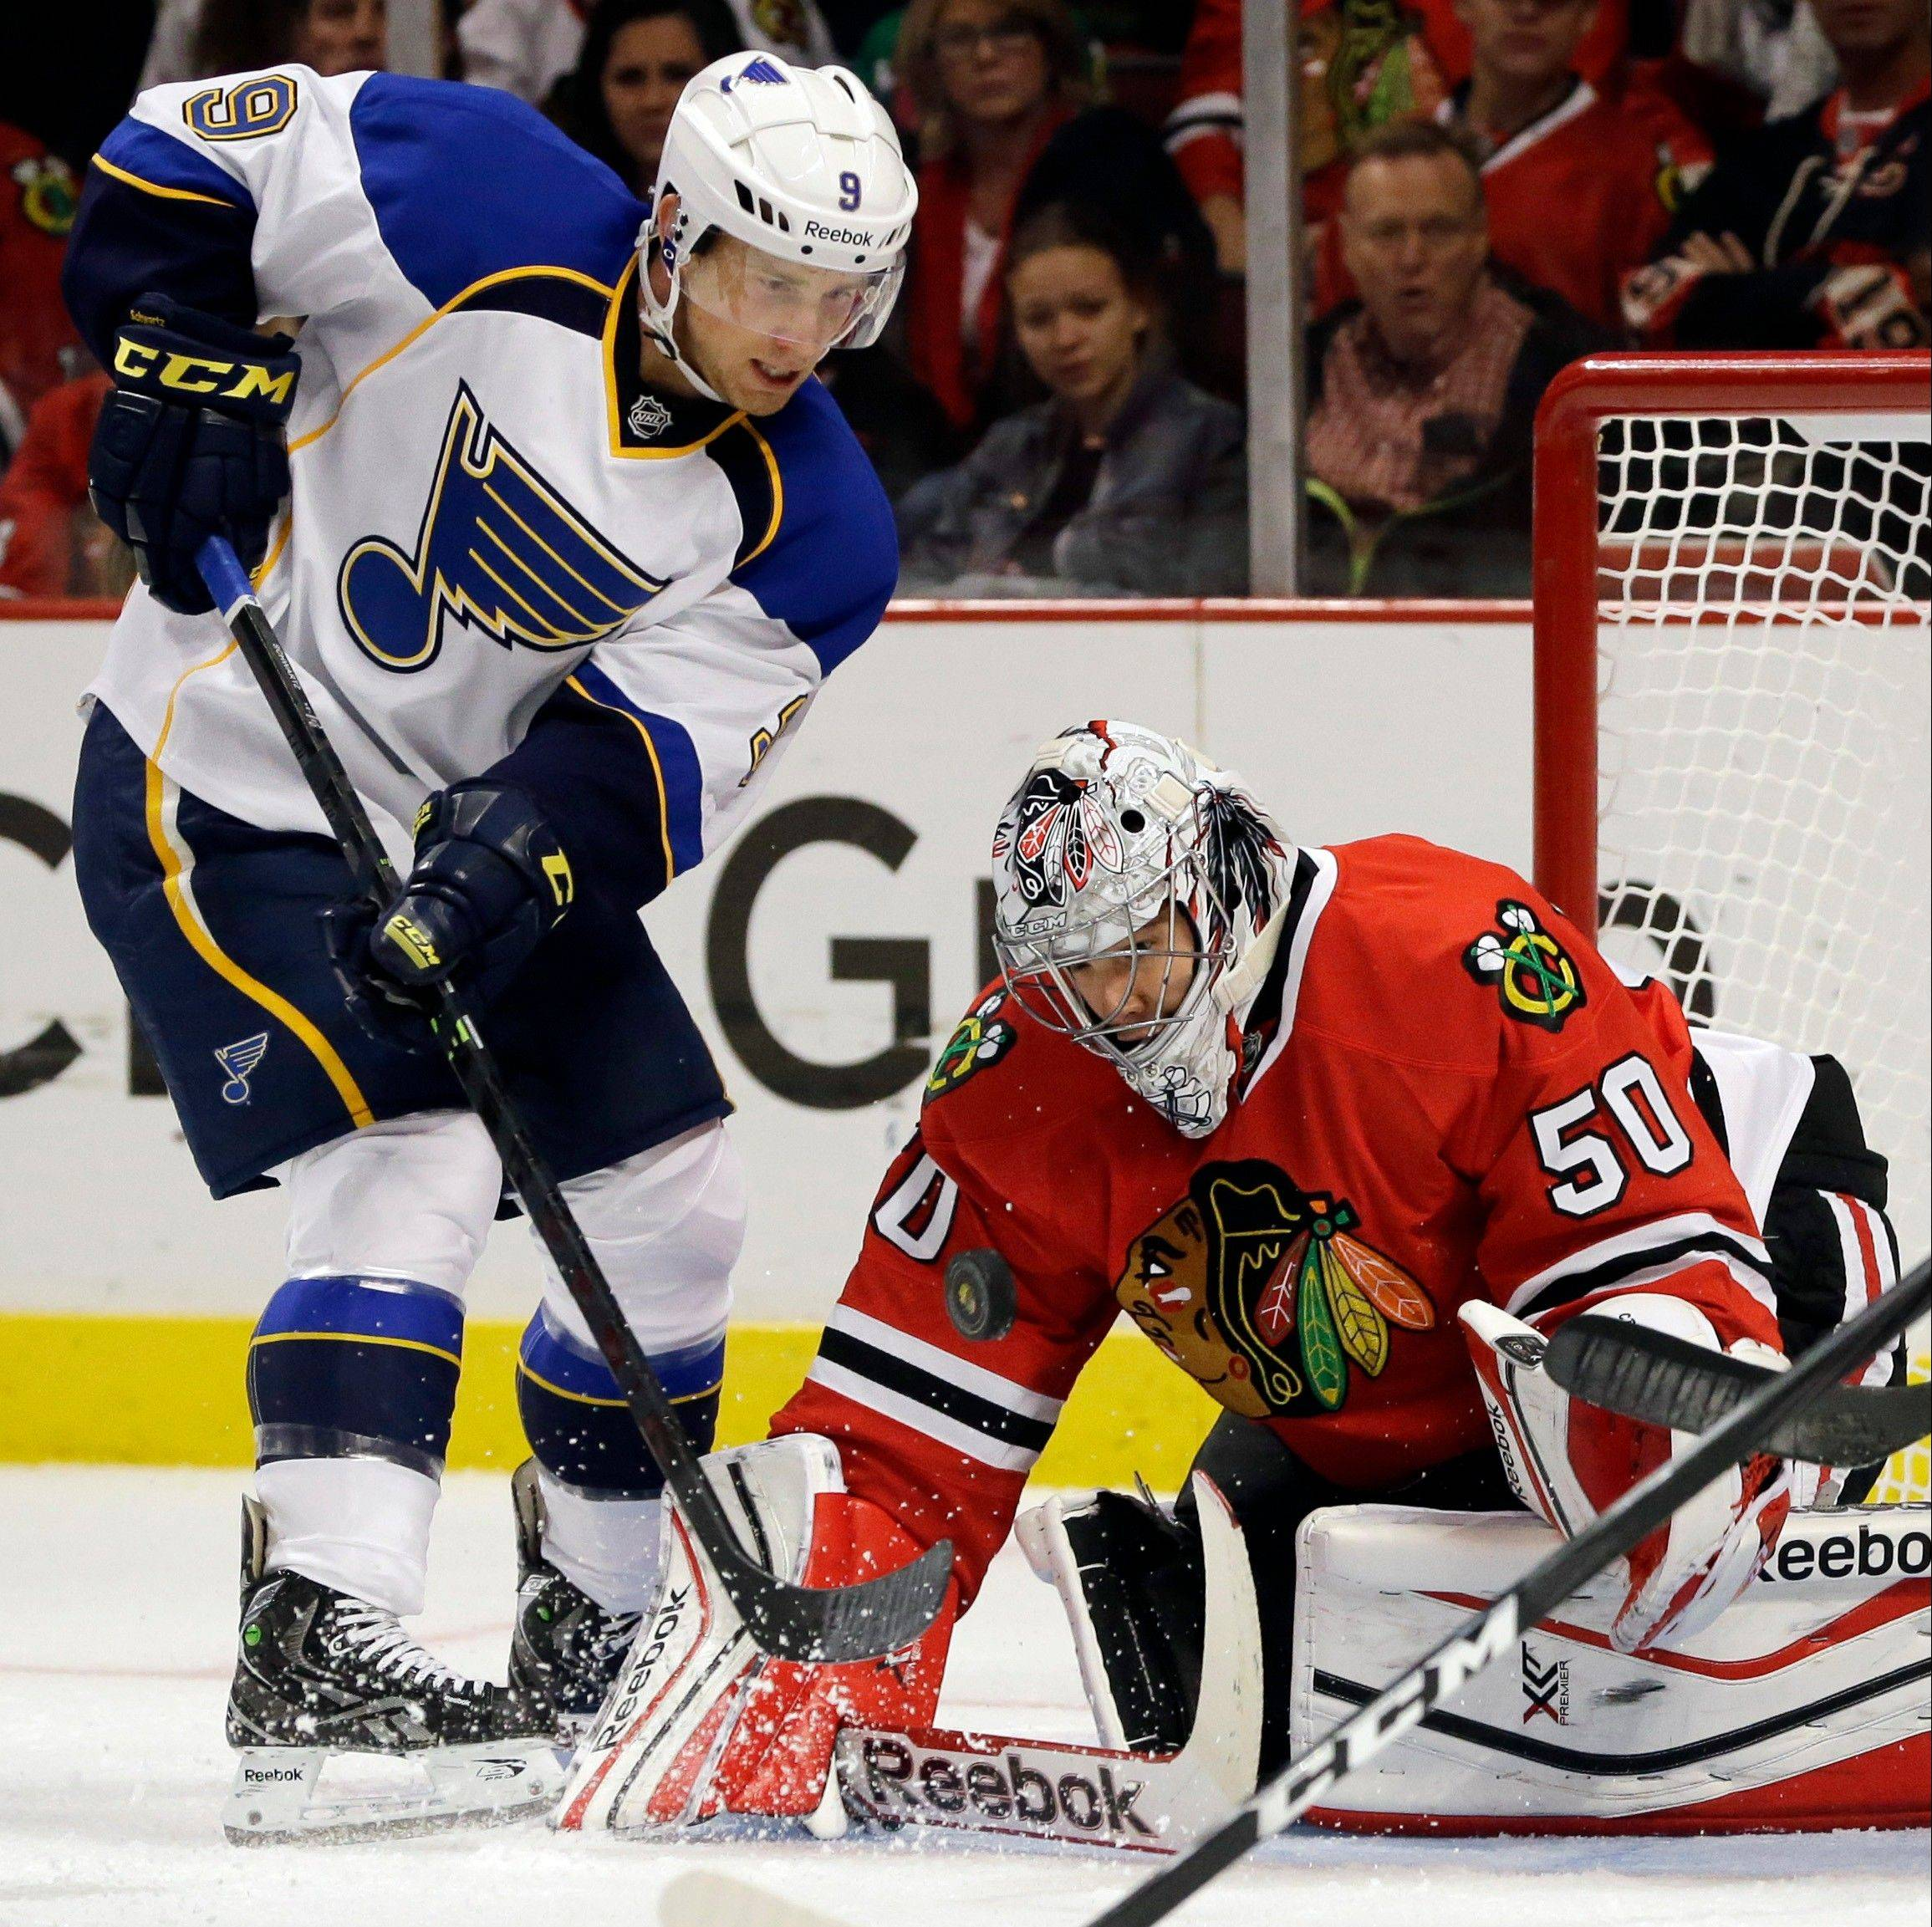 Blackhawks goalie Corey Crawford is 5-1-2 on the young season with a .921 save percentage.